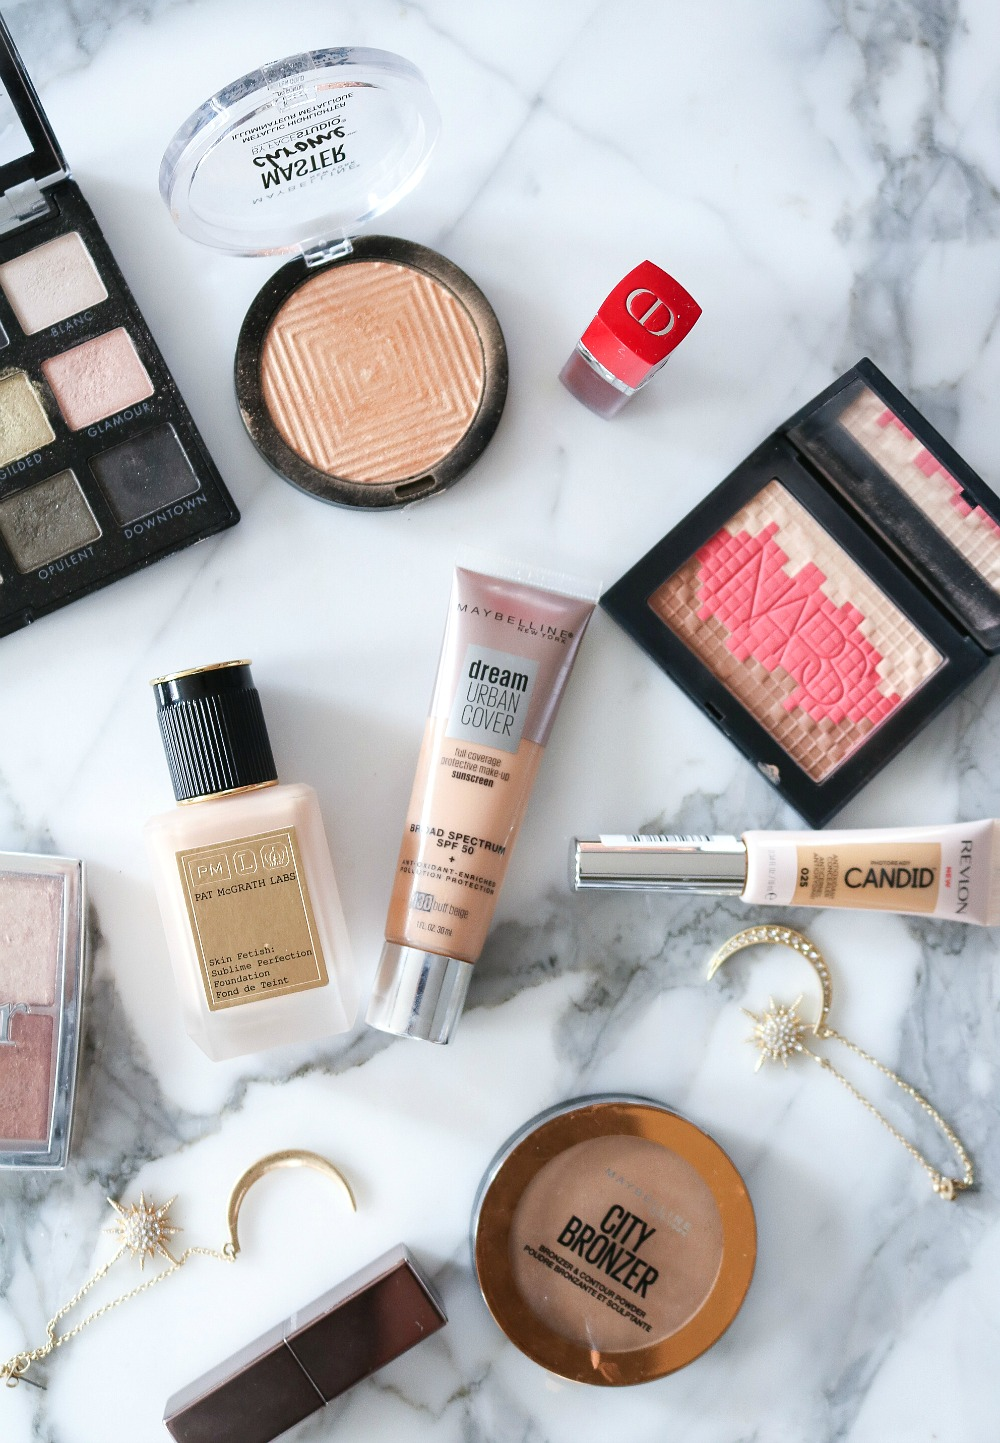 Best 2019 Makeup Releases I Maybelline, Revlon, Pat McGrath Labs and NARS #Makeup #BeautyBlog